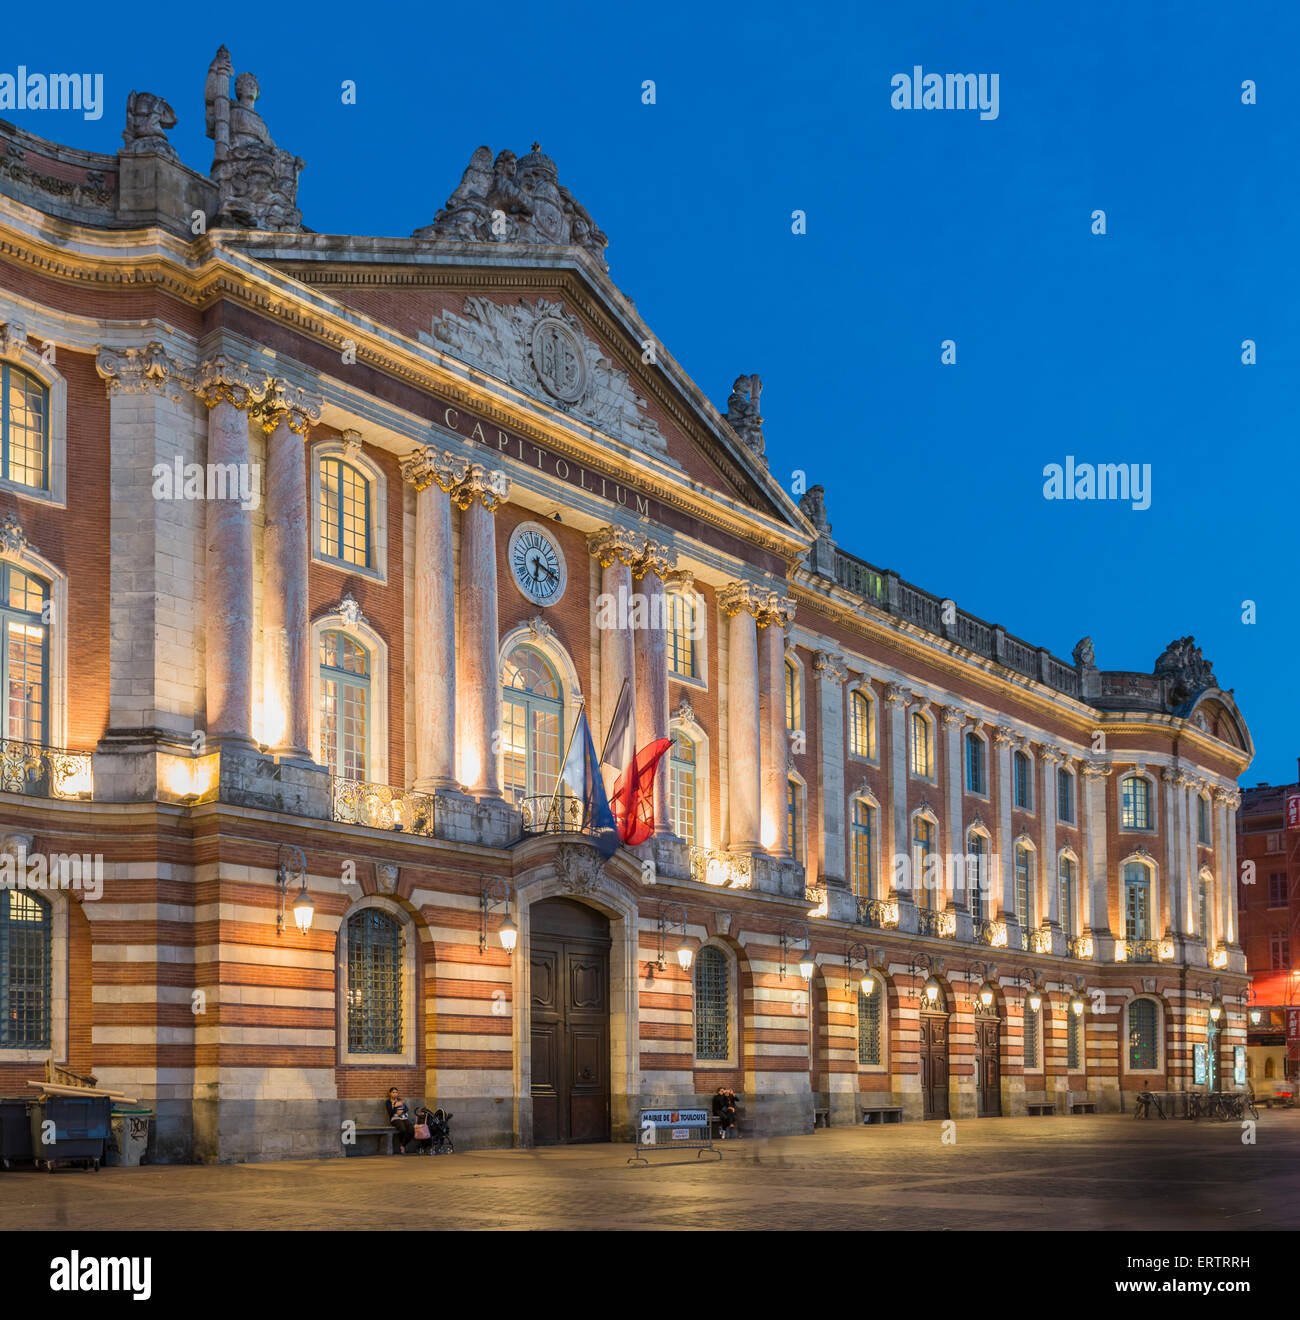 The Capitolium or Capitole city hall in Toulouse, France, Europe at night - Stock Image